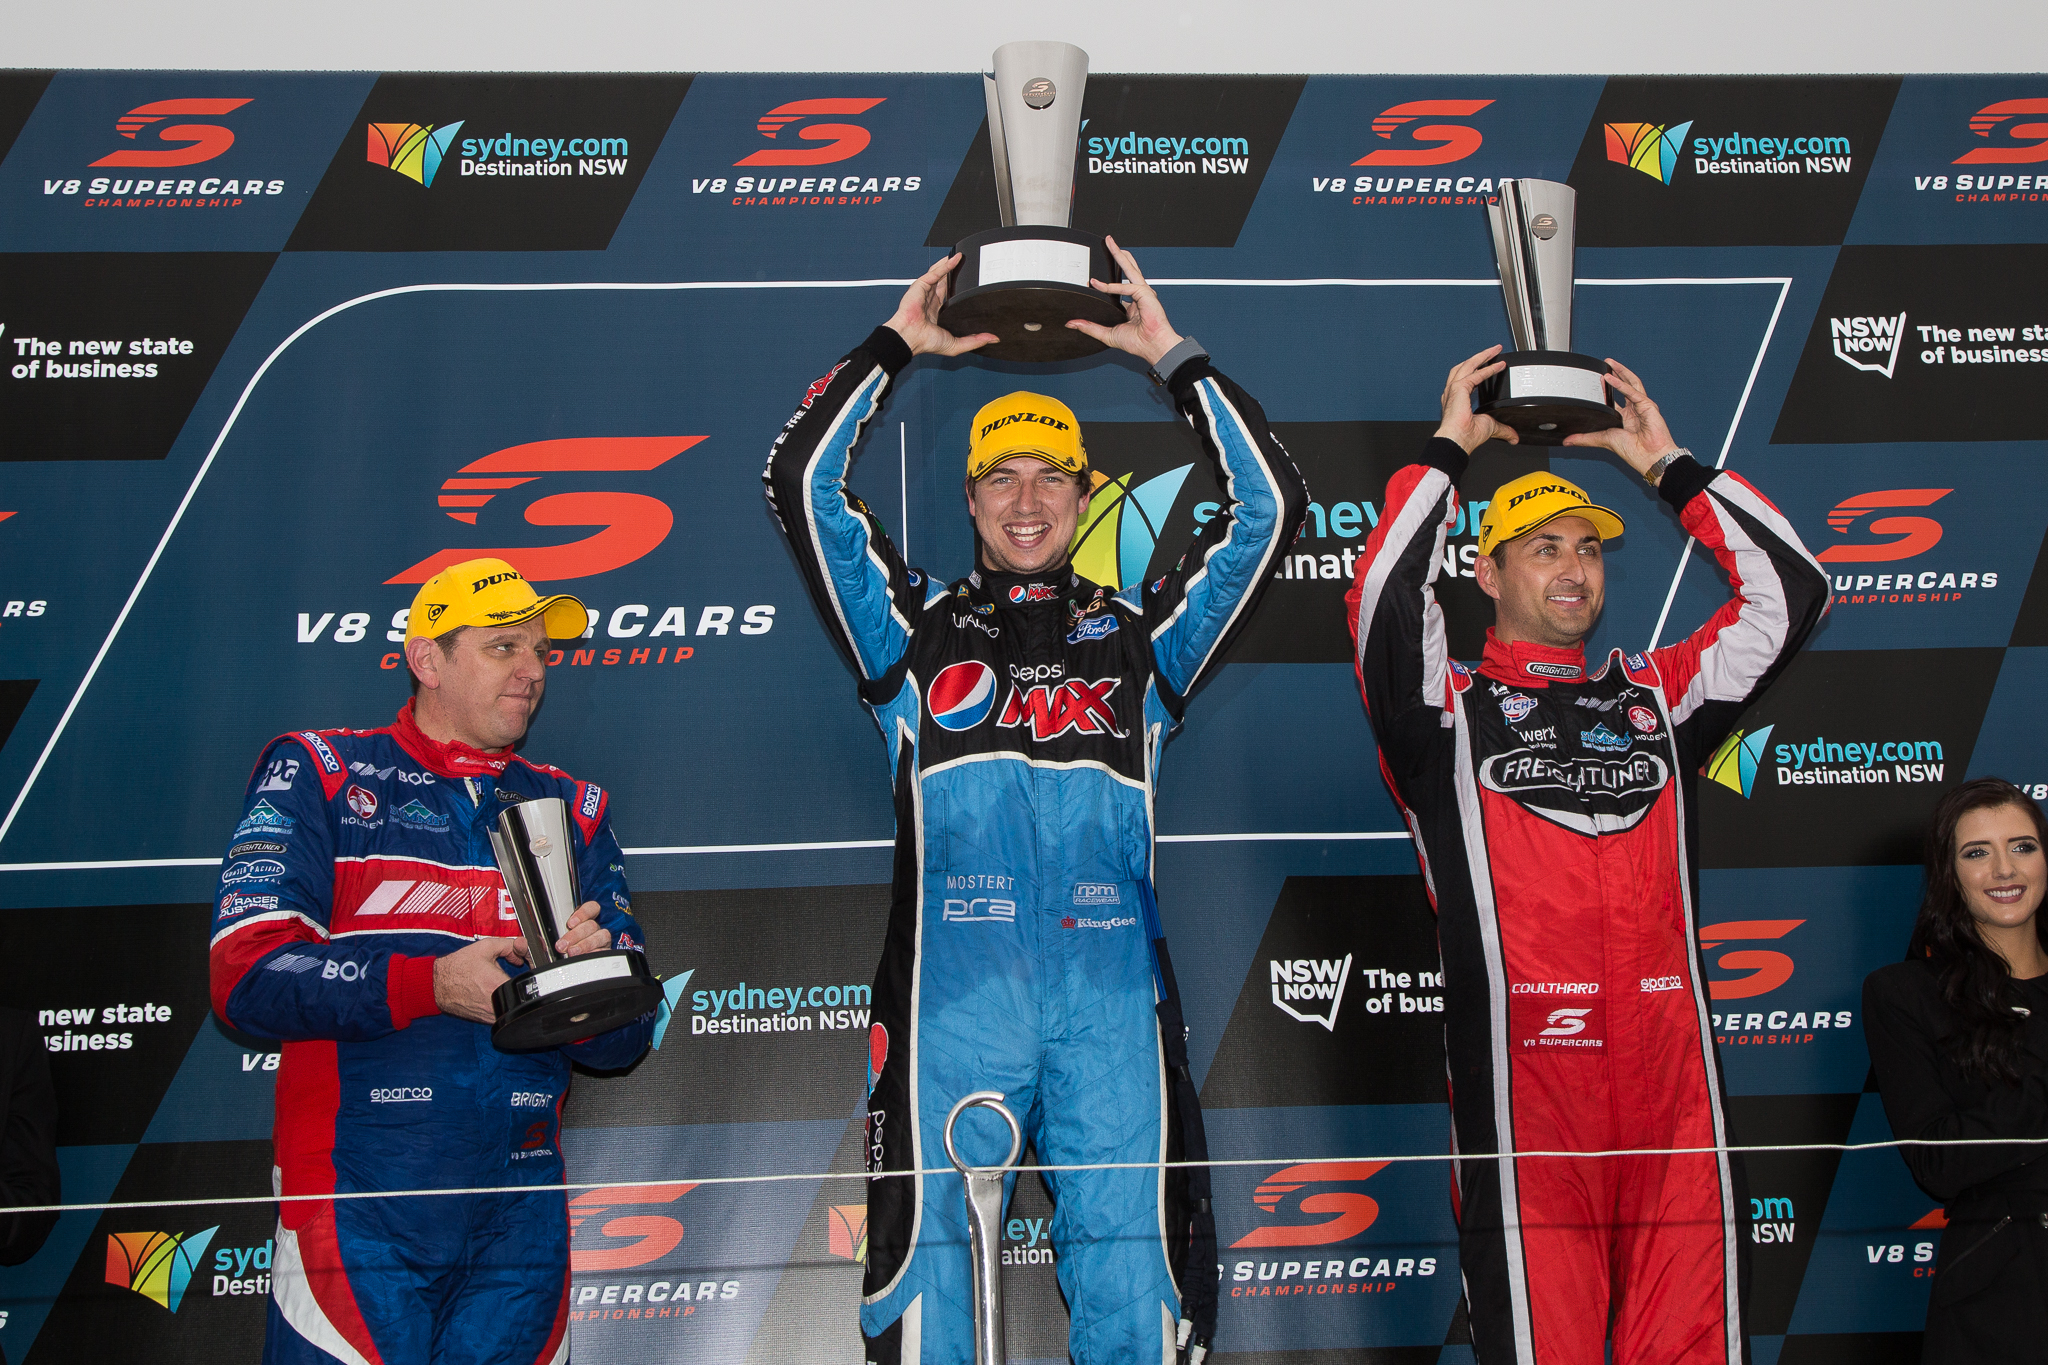 Chaz Mostert closes the championship gap to his team-mate Photo by Rhys Vandersyde